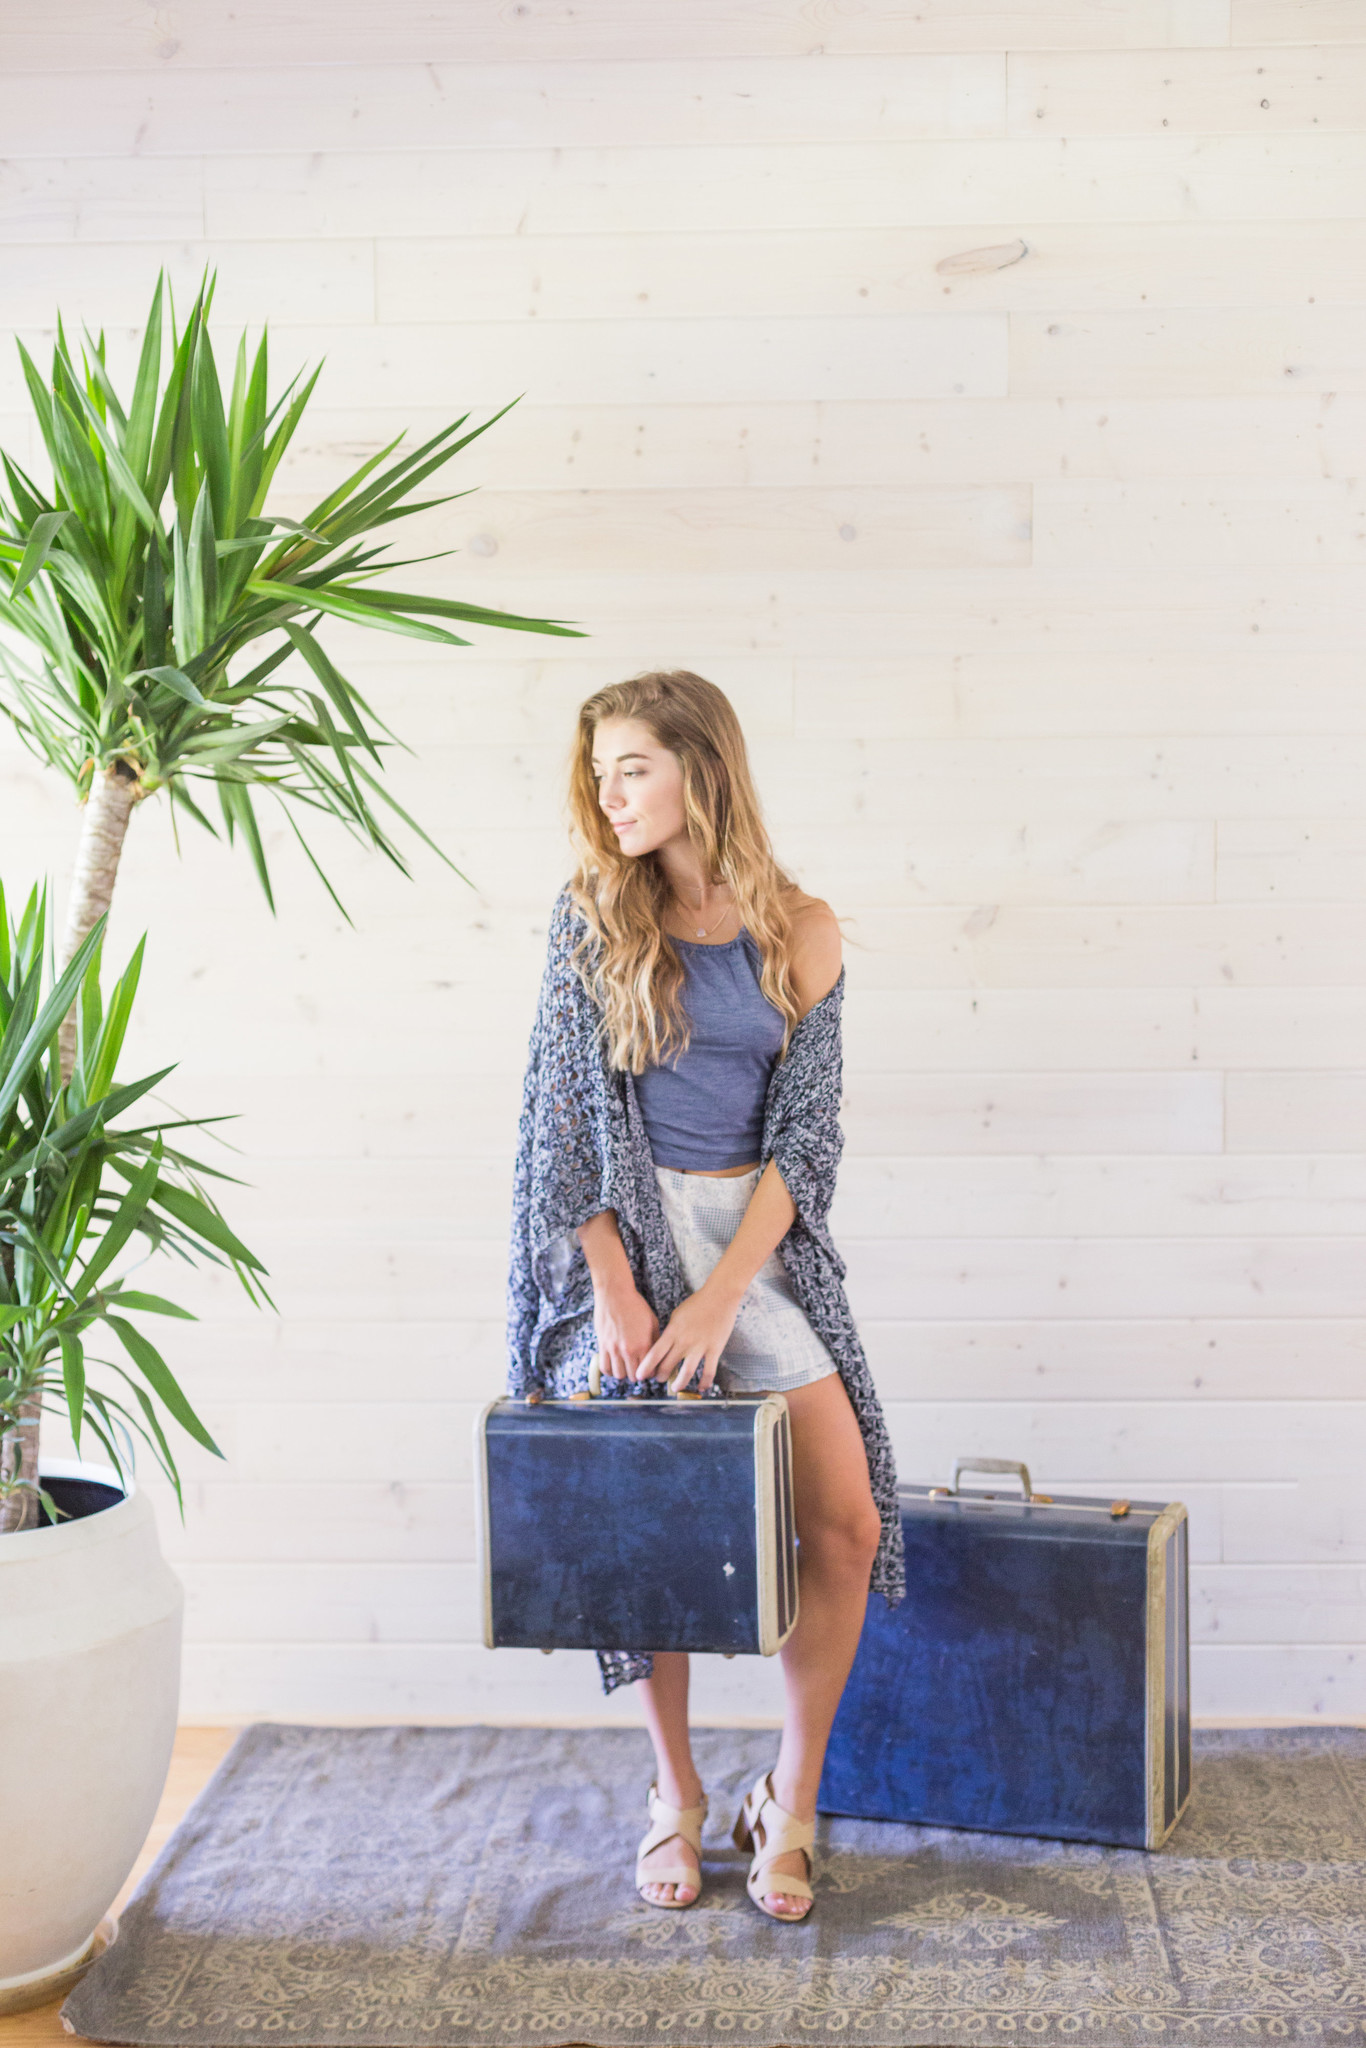 What to Wear When Traveling. How to Look Cute and Stay Comfortable While Traveling.